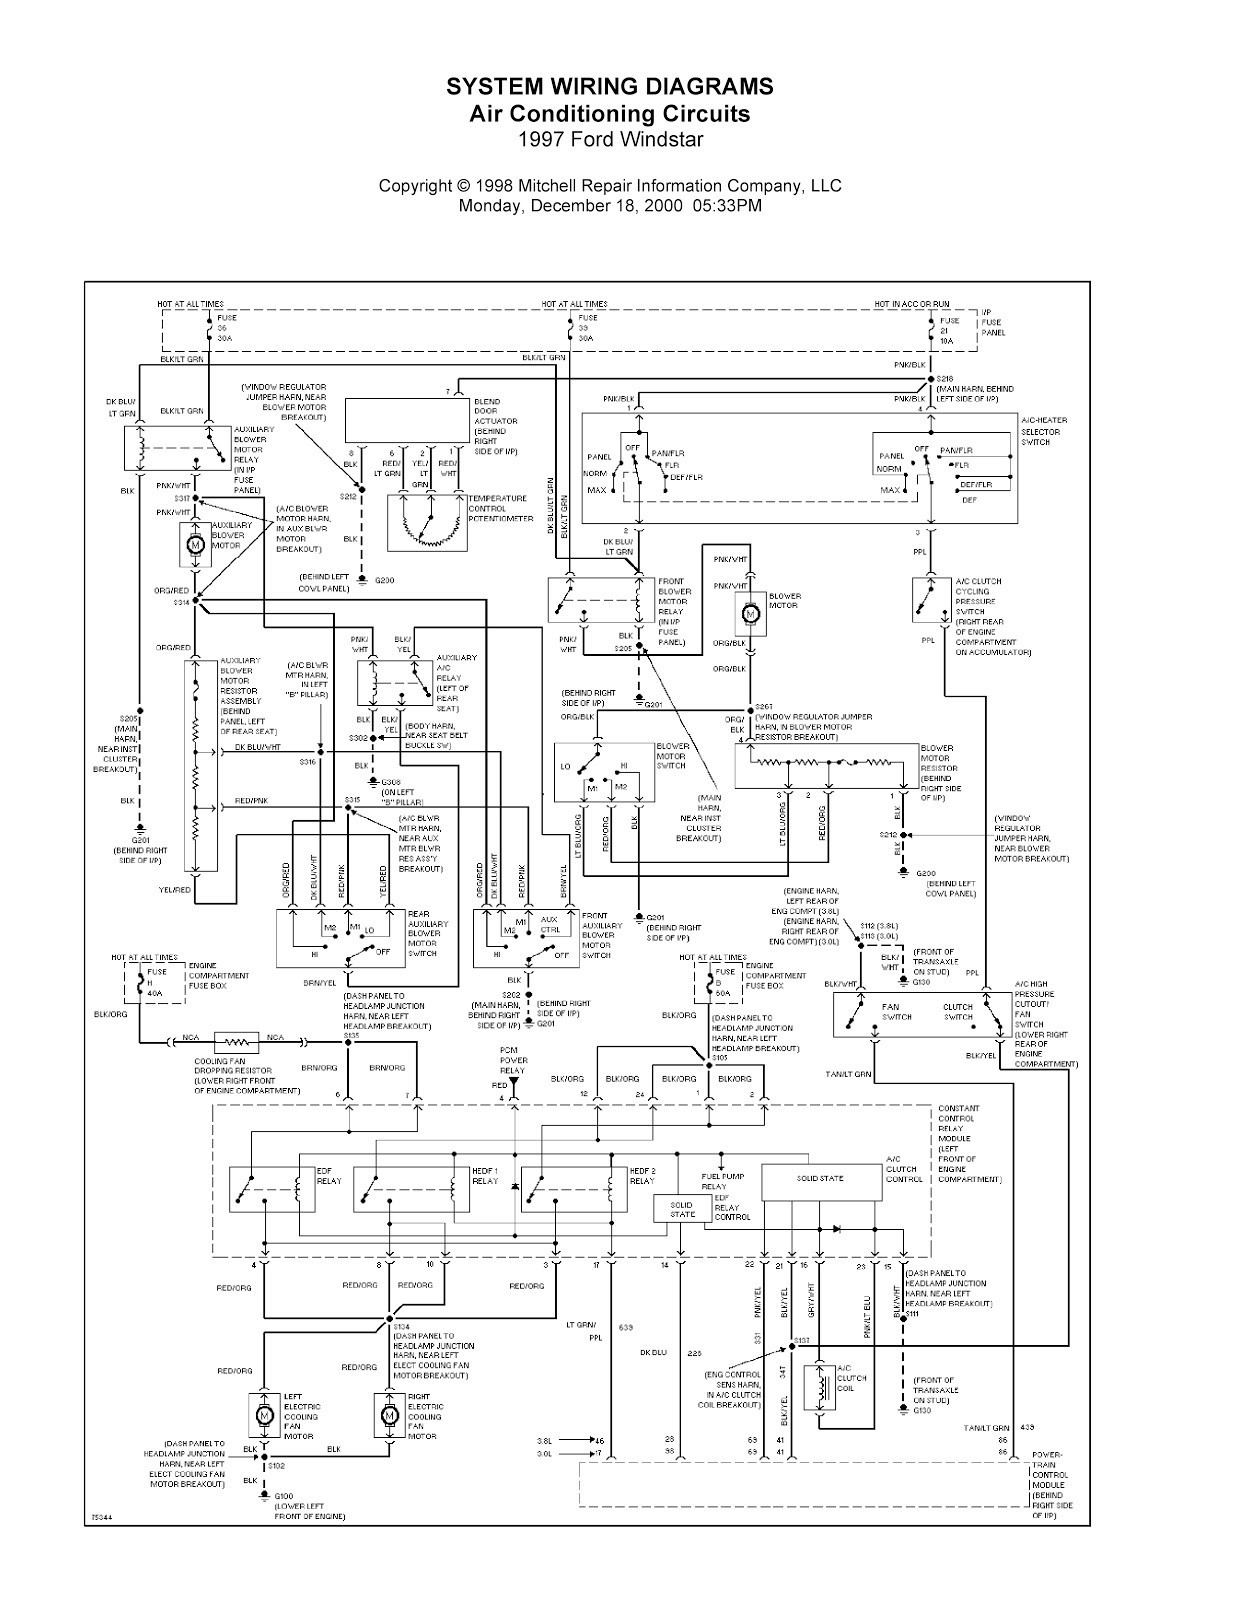 2001 Ford Expedition Engine Diagram - Wiring Diagram Structure